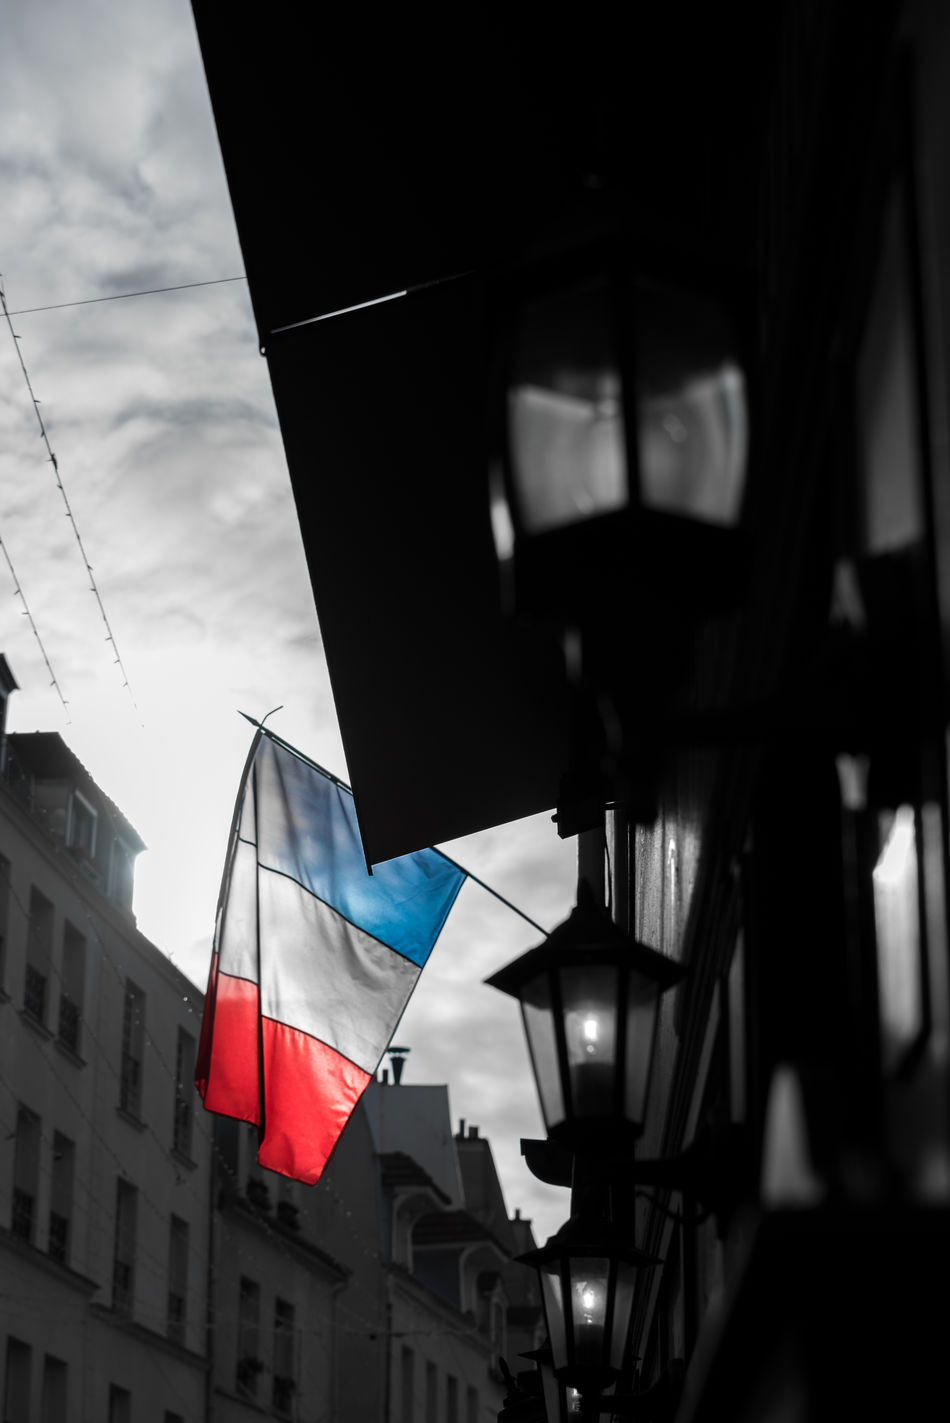 Architecture Building Exterior Built Structure Cloud - Sky Day Flag French Flag Low Angle View No People Outdoors Paris Patriotism Sky